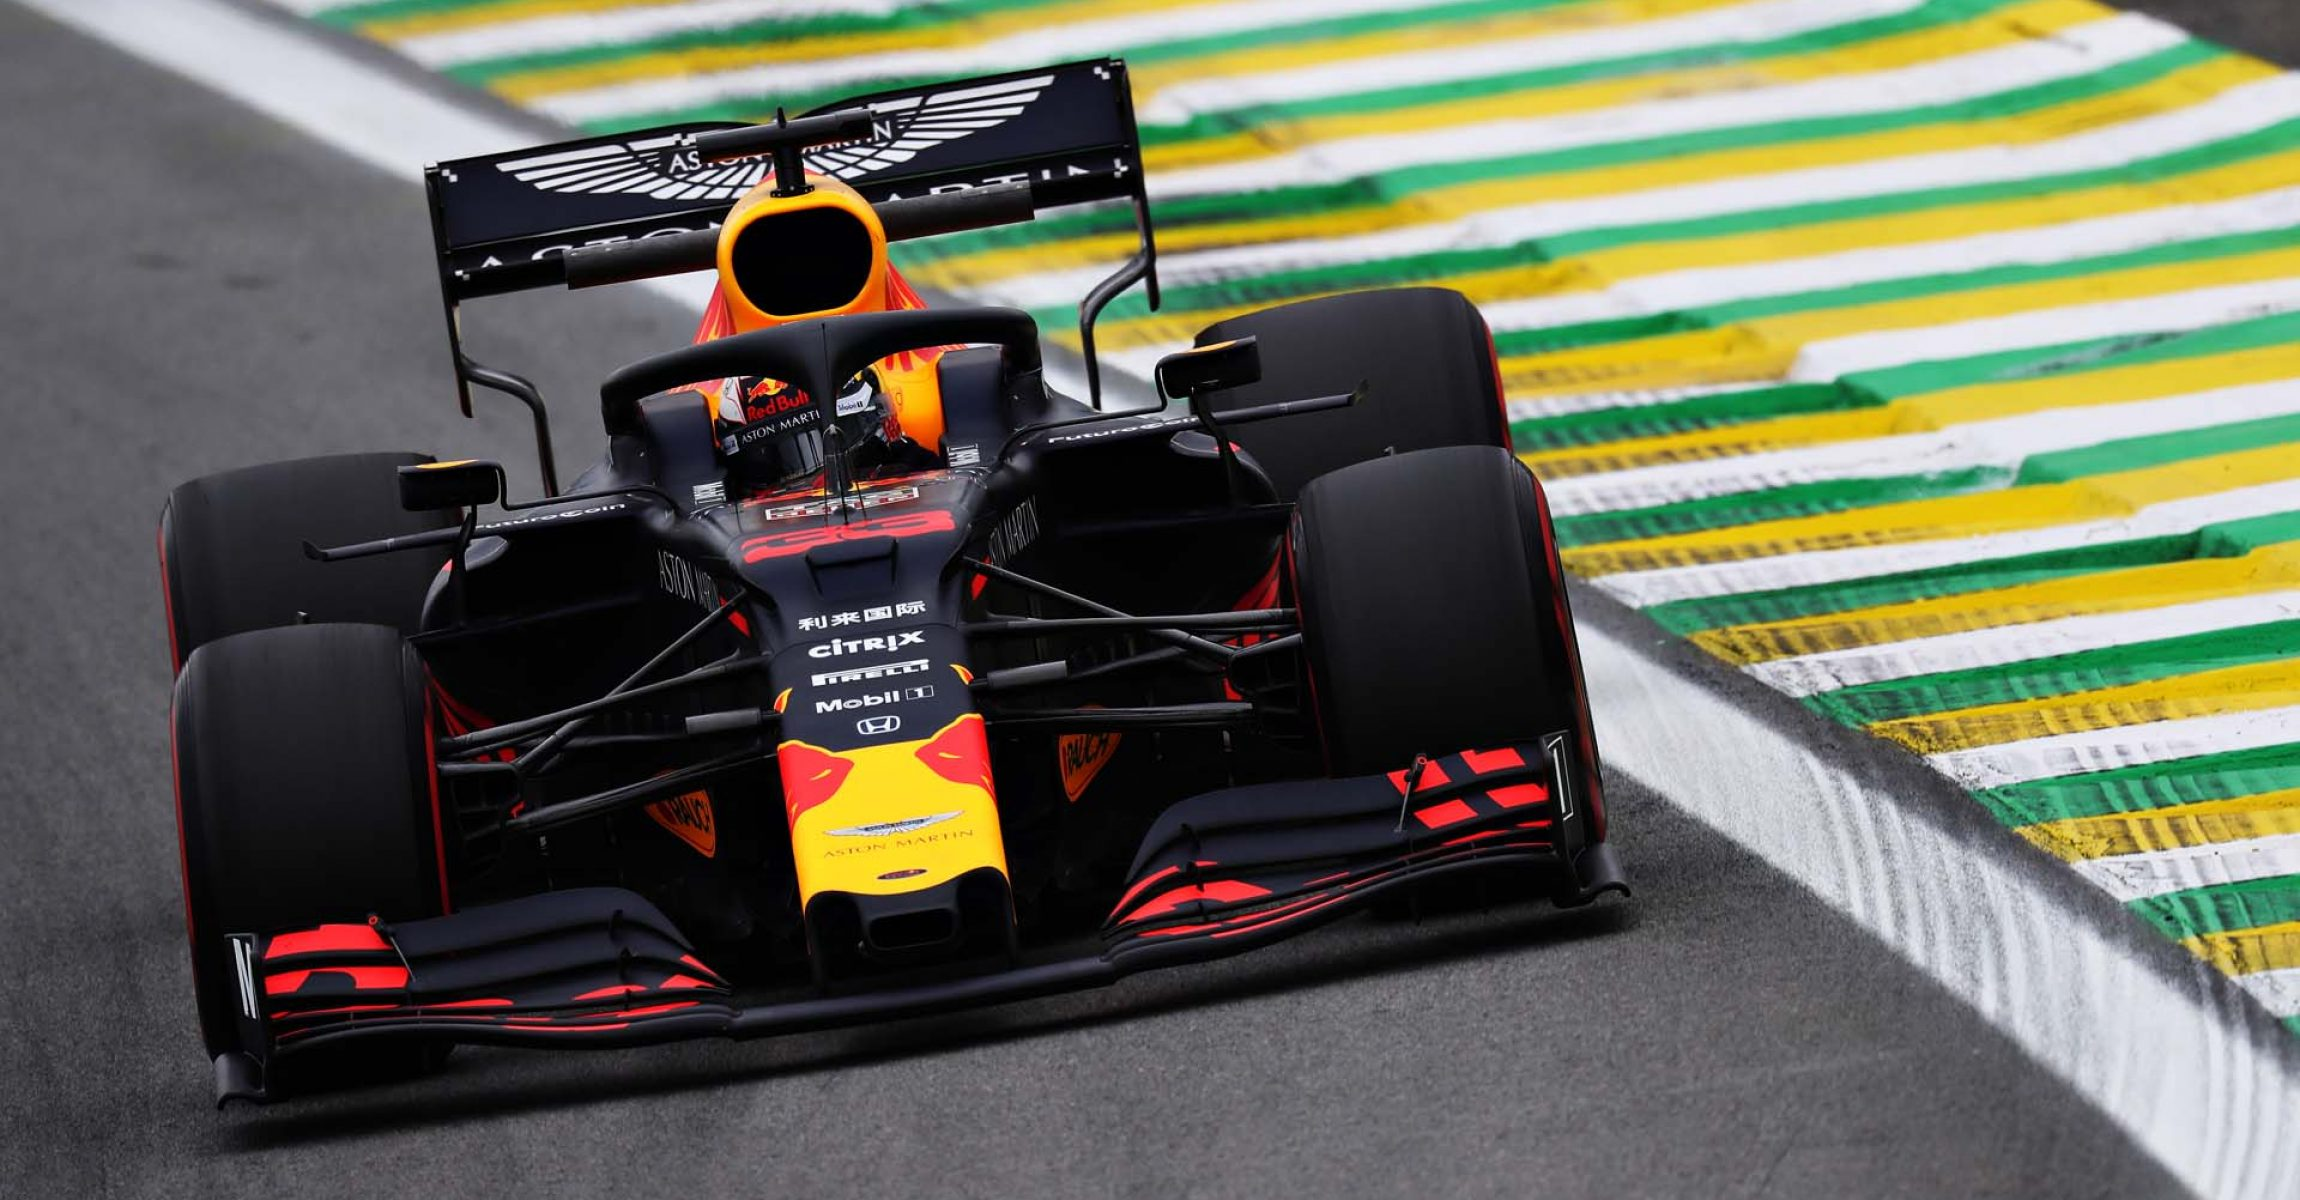 SAO PAULO, BRAZIL - NOVEMBER 15: Max Verstappen of the Netherlands driving the (33) Aston Martin Red Bull Racing RB15 on track during practice for the F1 Grand Prix of Brazil at Autodromo Jose Carlos Pace on November 15, 2019 in Sao Paulo, Brazil. (Photo by Mark Thompson/Getty Images) // Getty Images / Red Bull Content Pool // AP-226RXR5EN2111 // Usage for editorial use only //